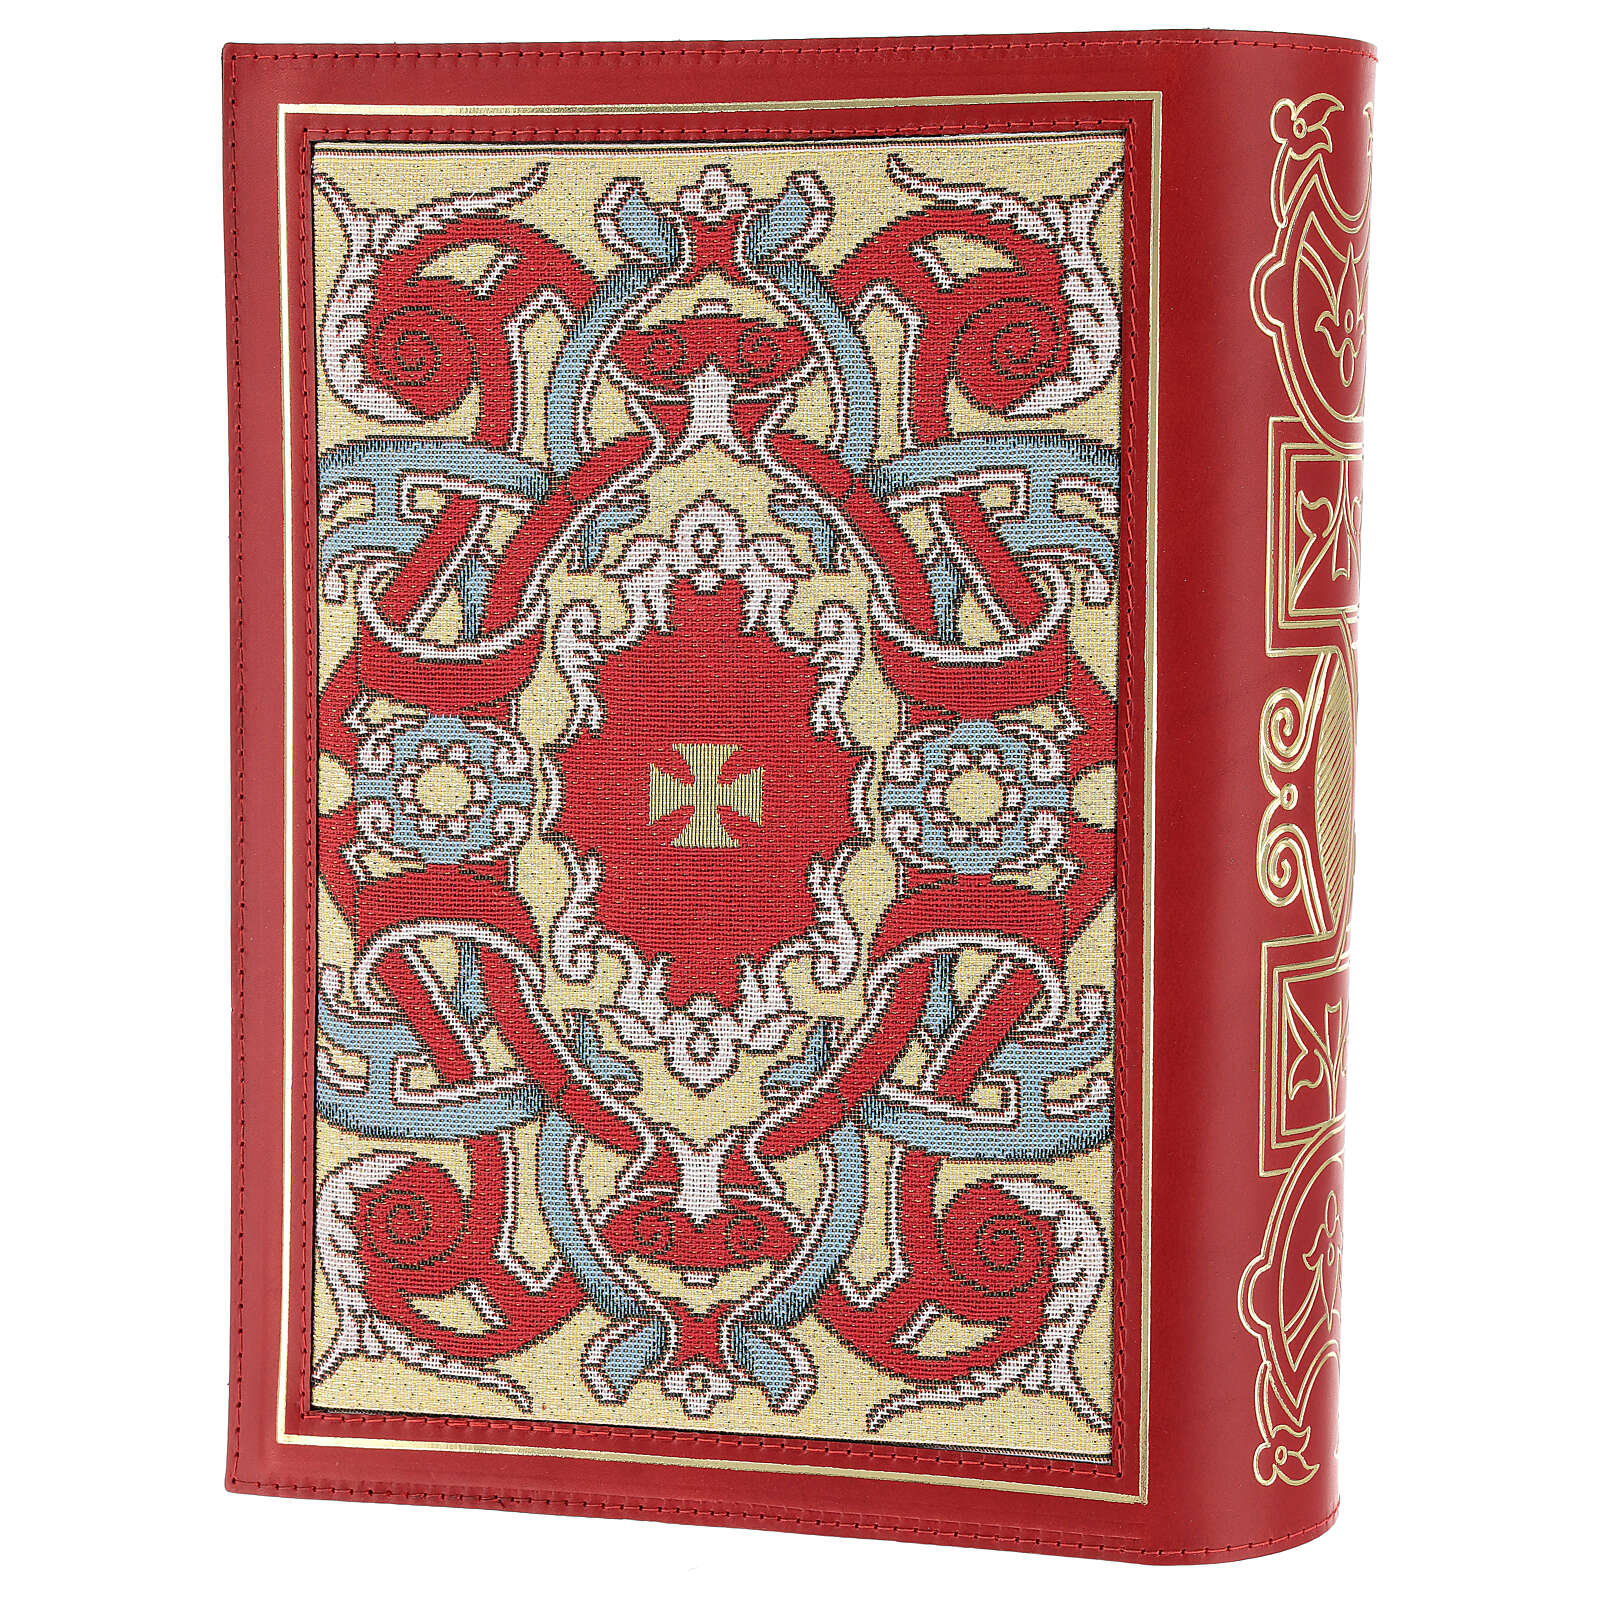 Missal cover III edition in red leather fabric 4